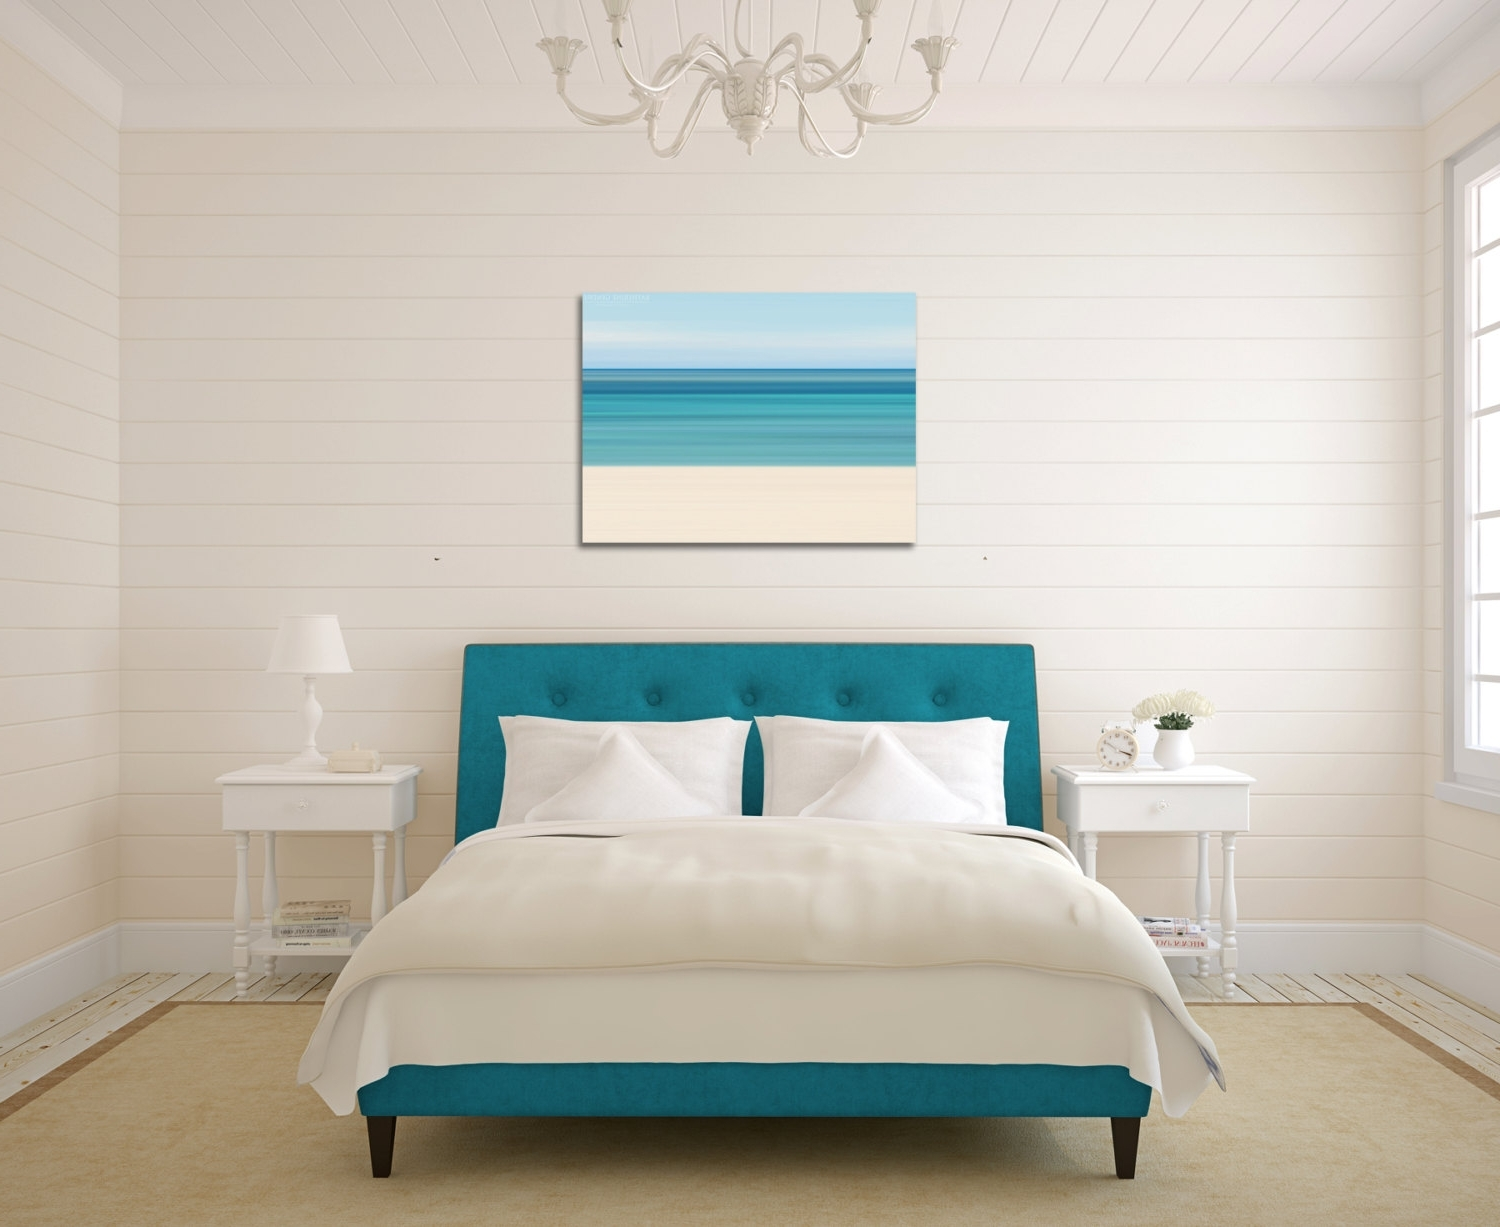 Trendy Beach Bedroom Wall Art – Run For The Comfortable Bedroom Wall Art With Beach Wall Art For Bedroom (View 15 of 15)